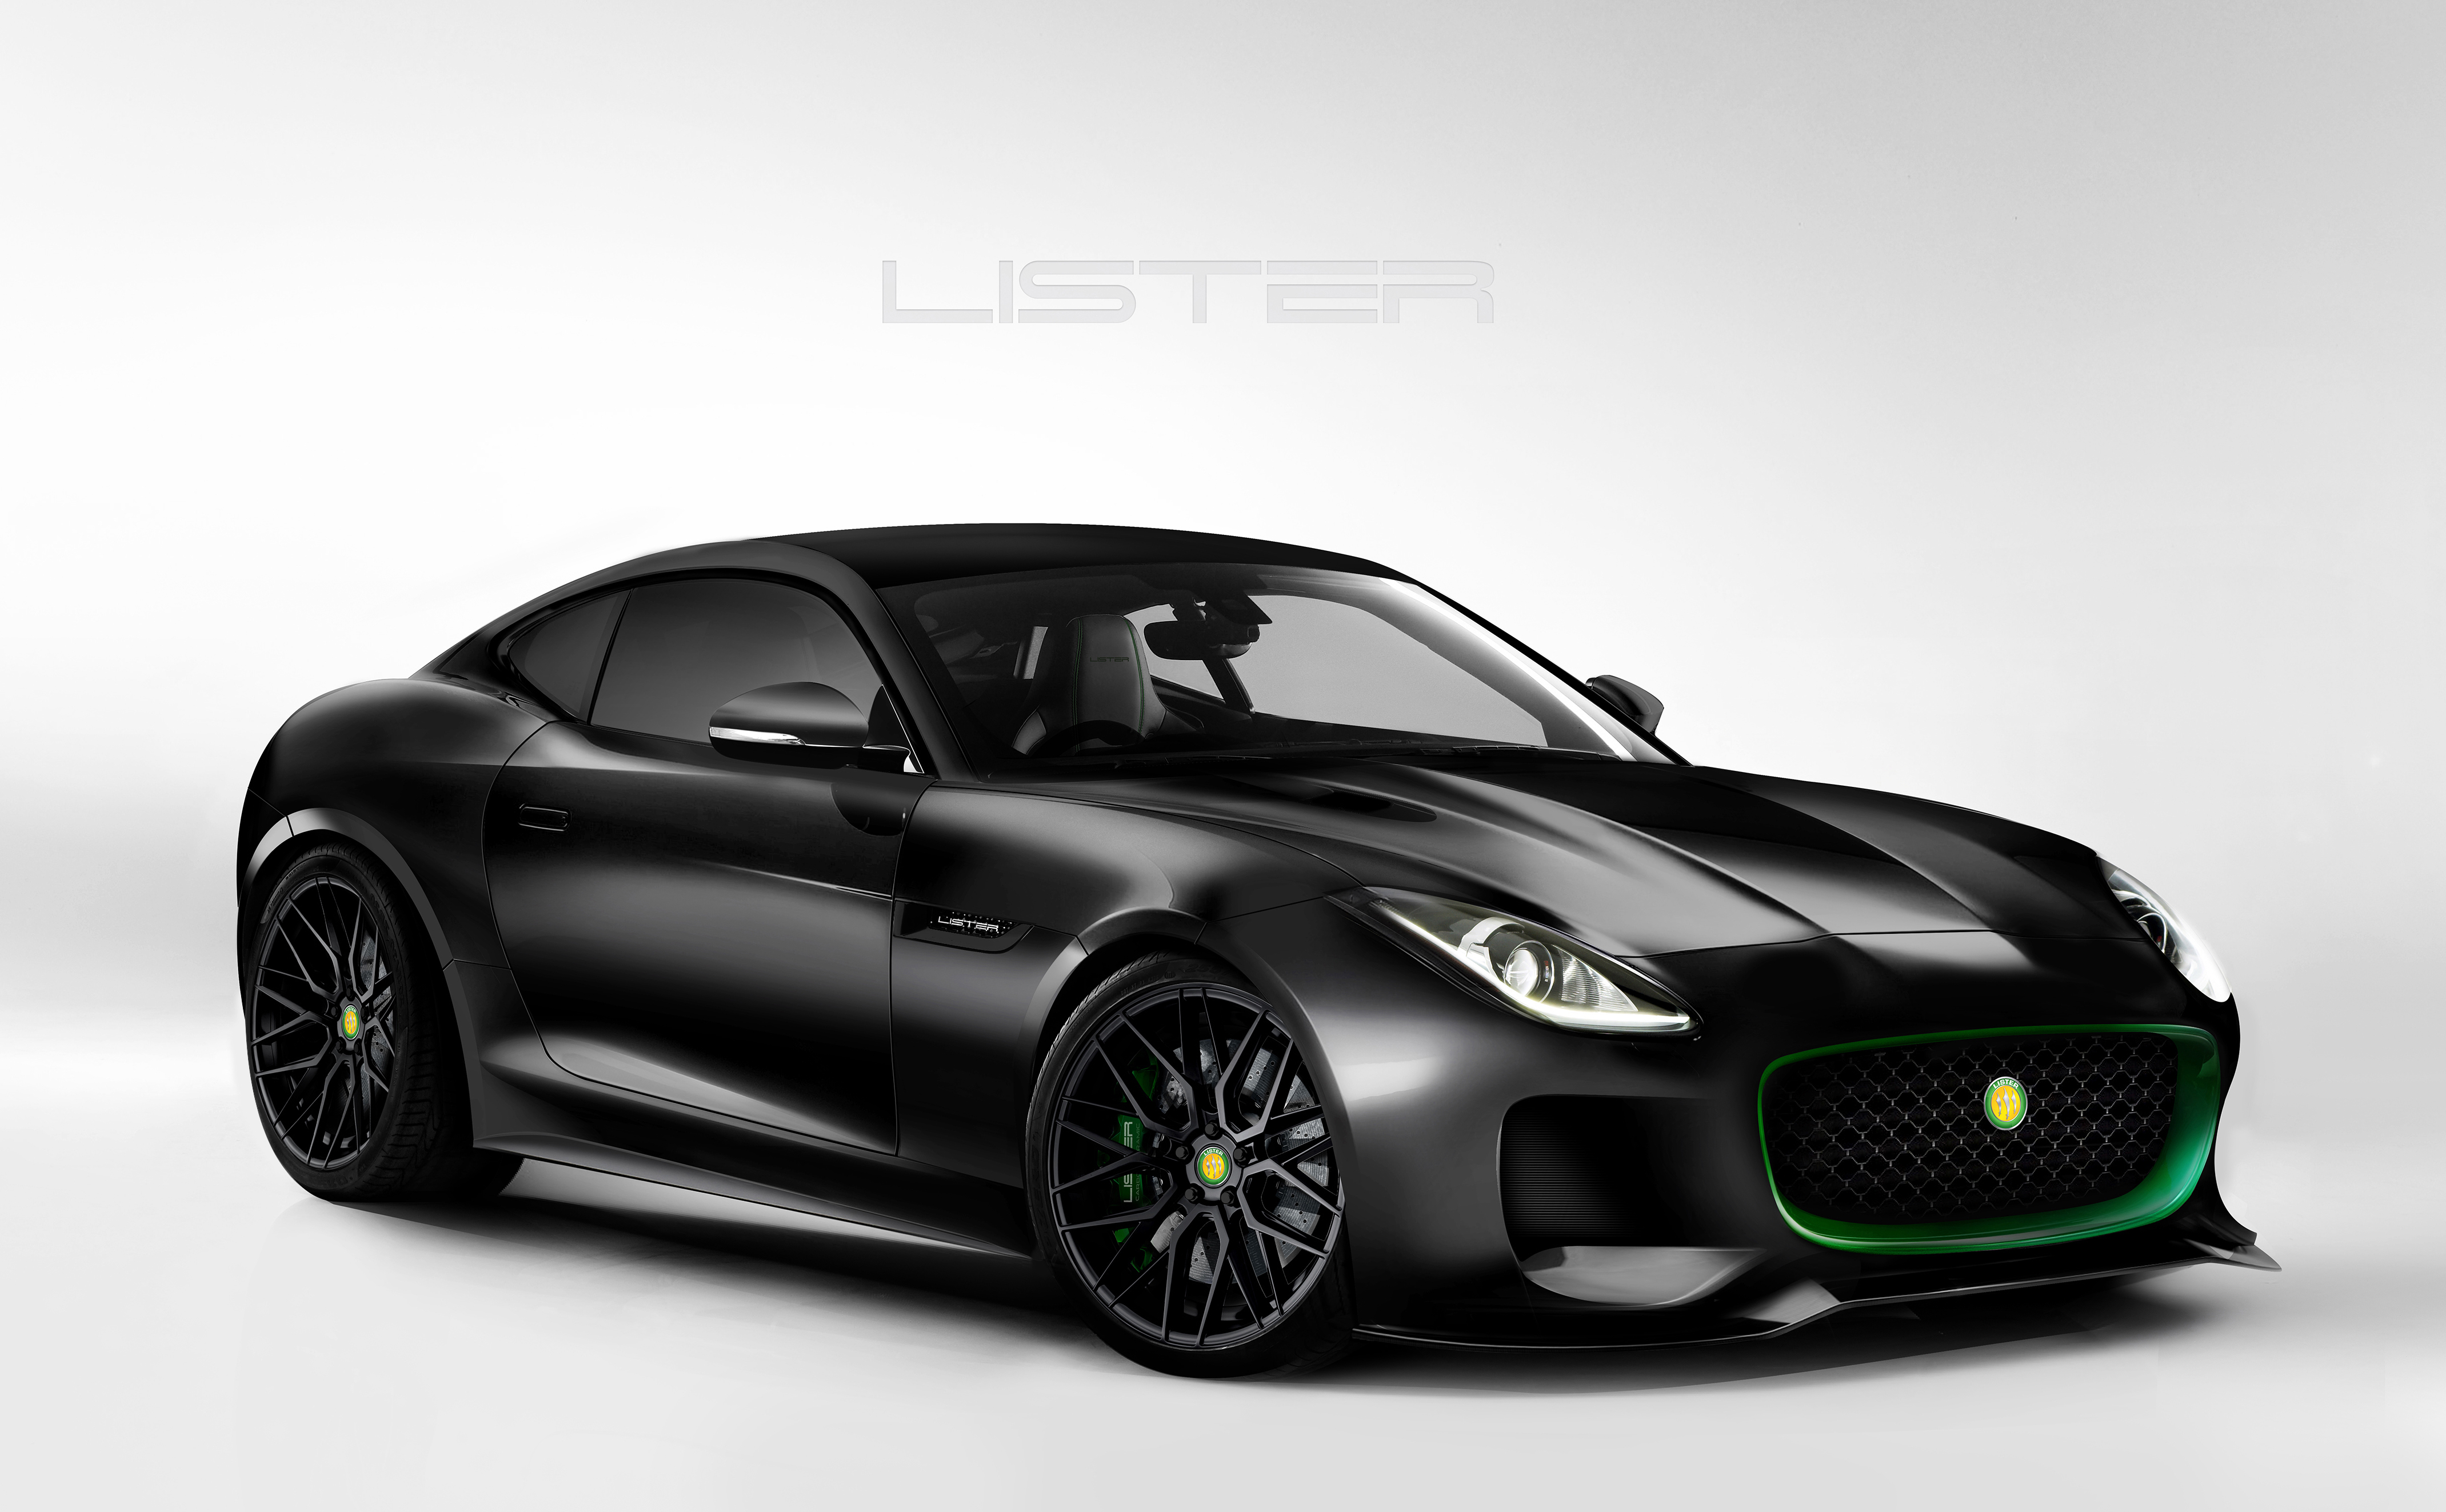 The LFT 666 is a Jaguar F-Type with added evil